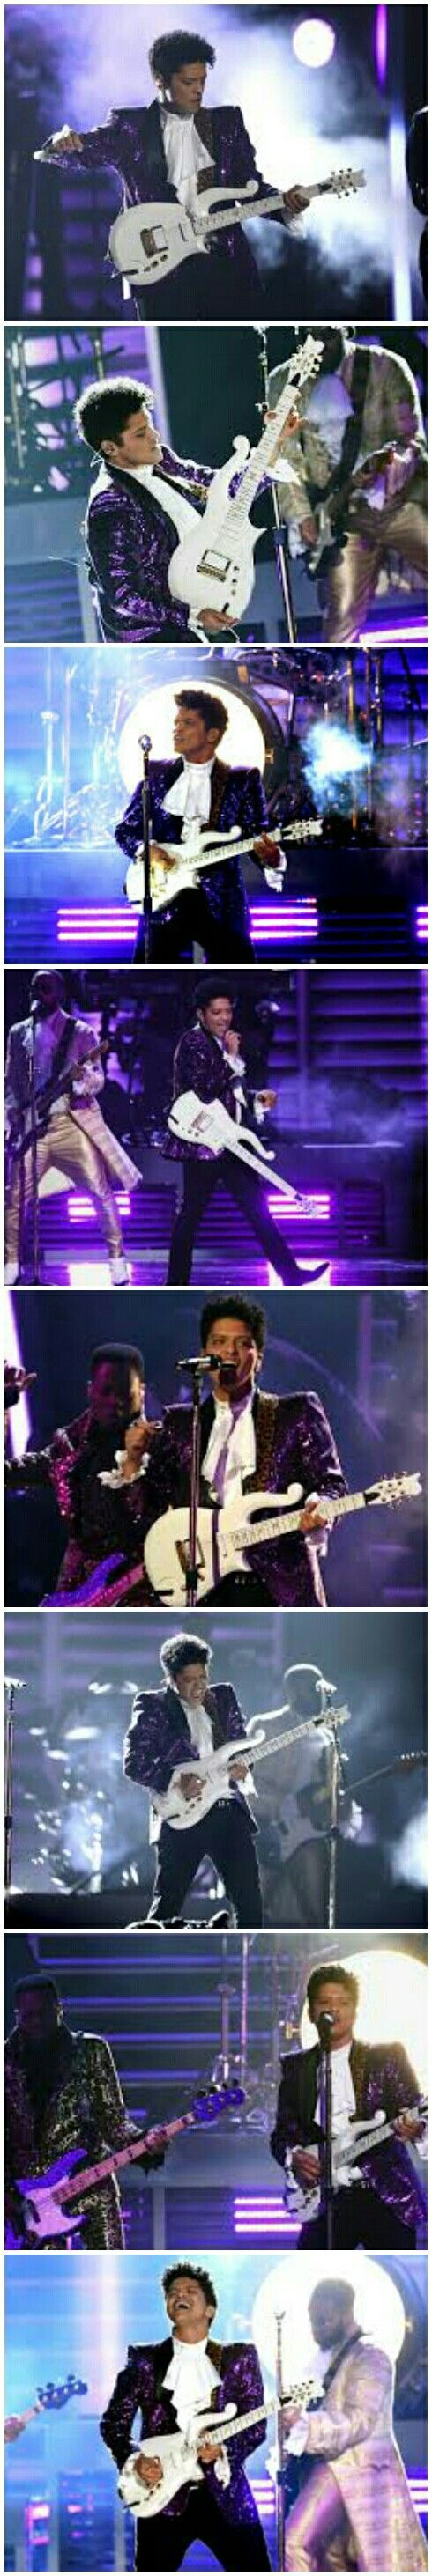 2017 Grammys, Bruno Mars tributed the late singer Prince. Good job!